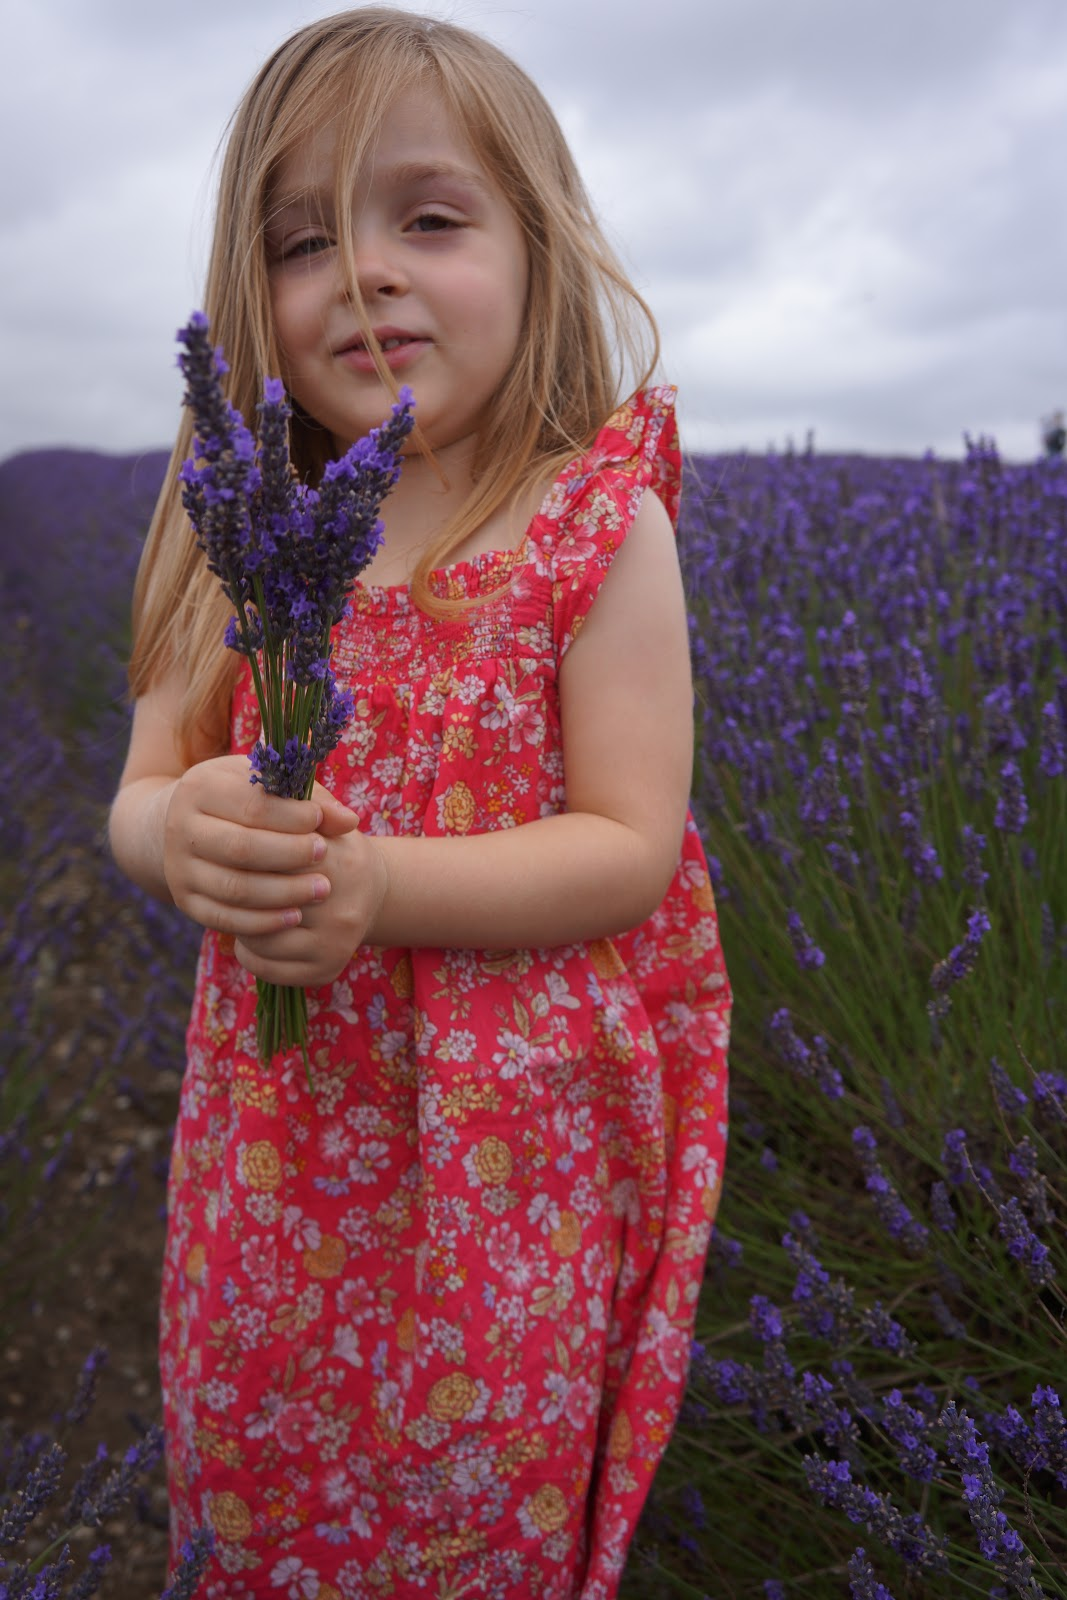 Some top tips for visiting lavender fields: Little girl holding a lavender bouquet